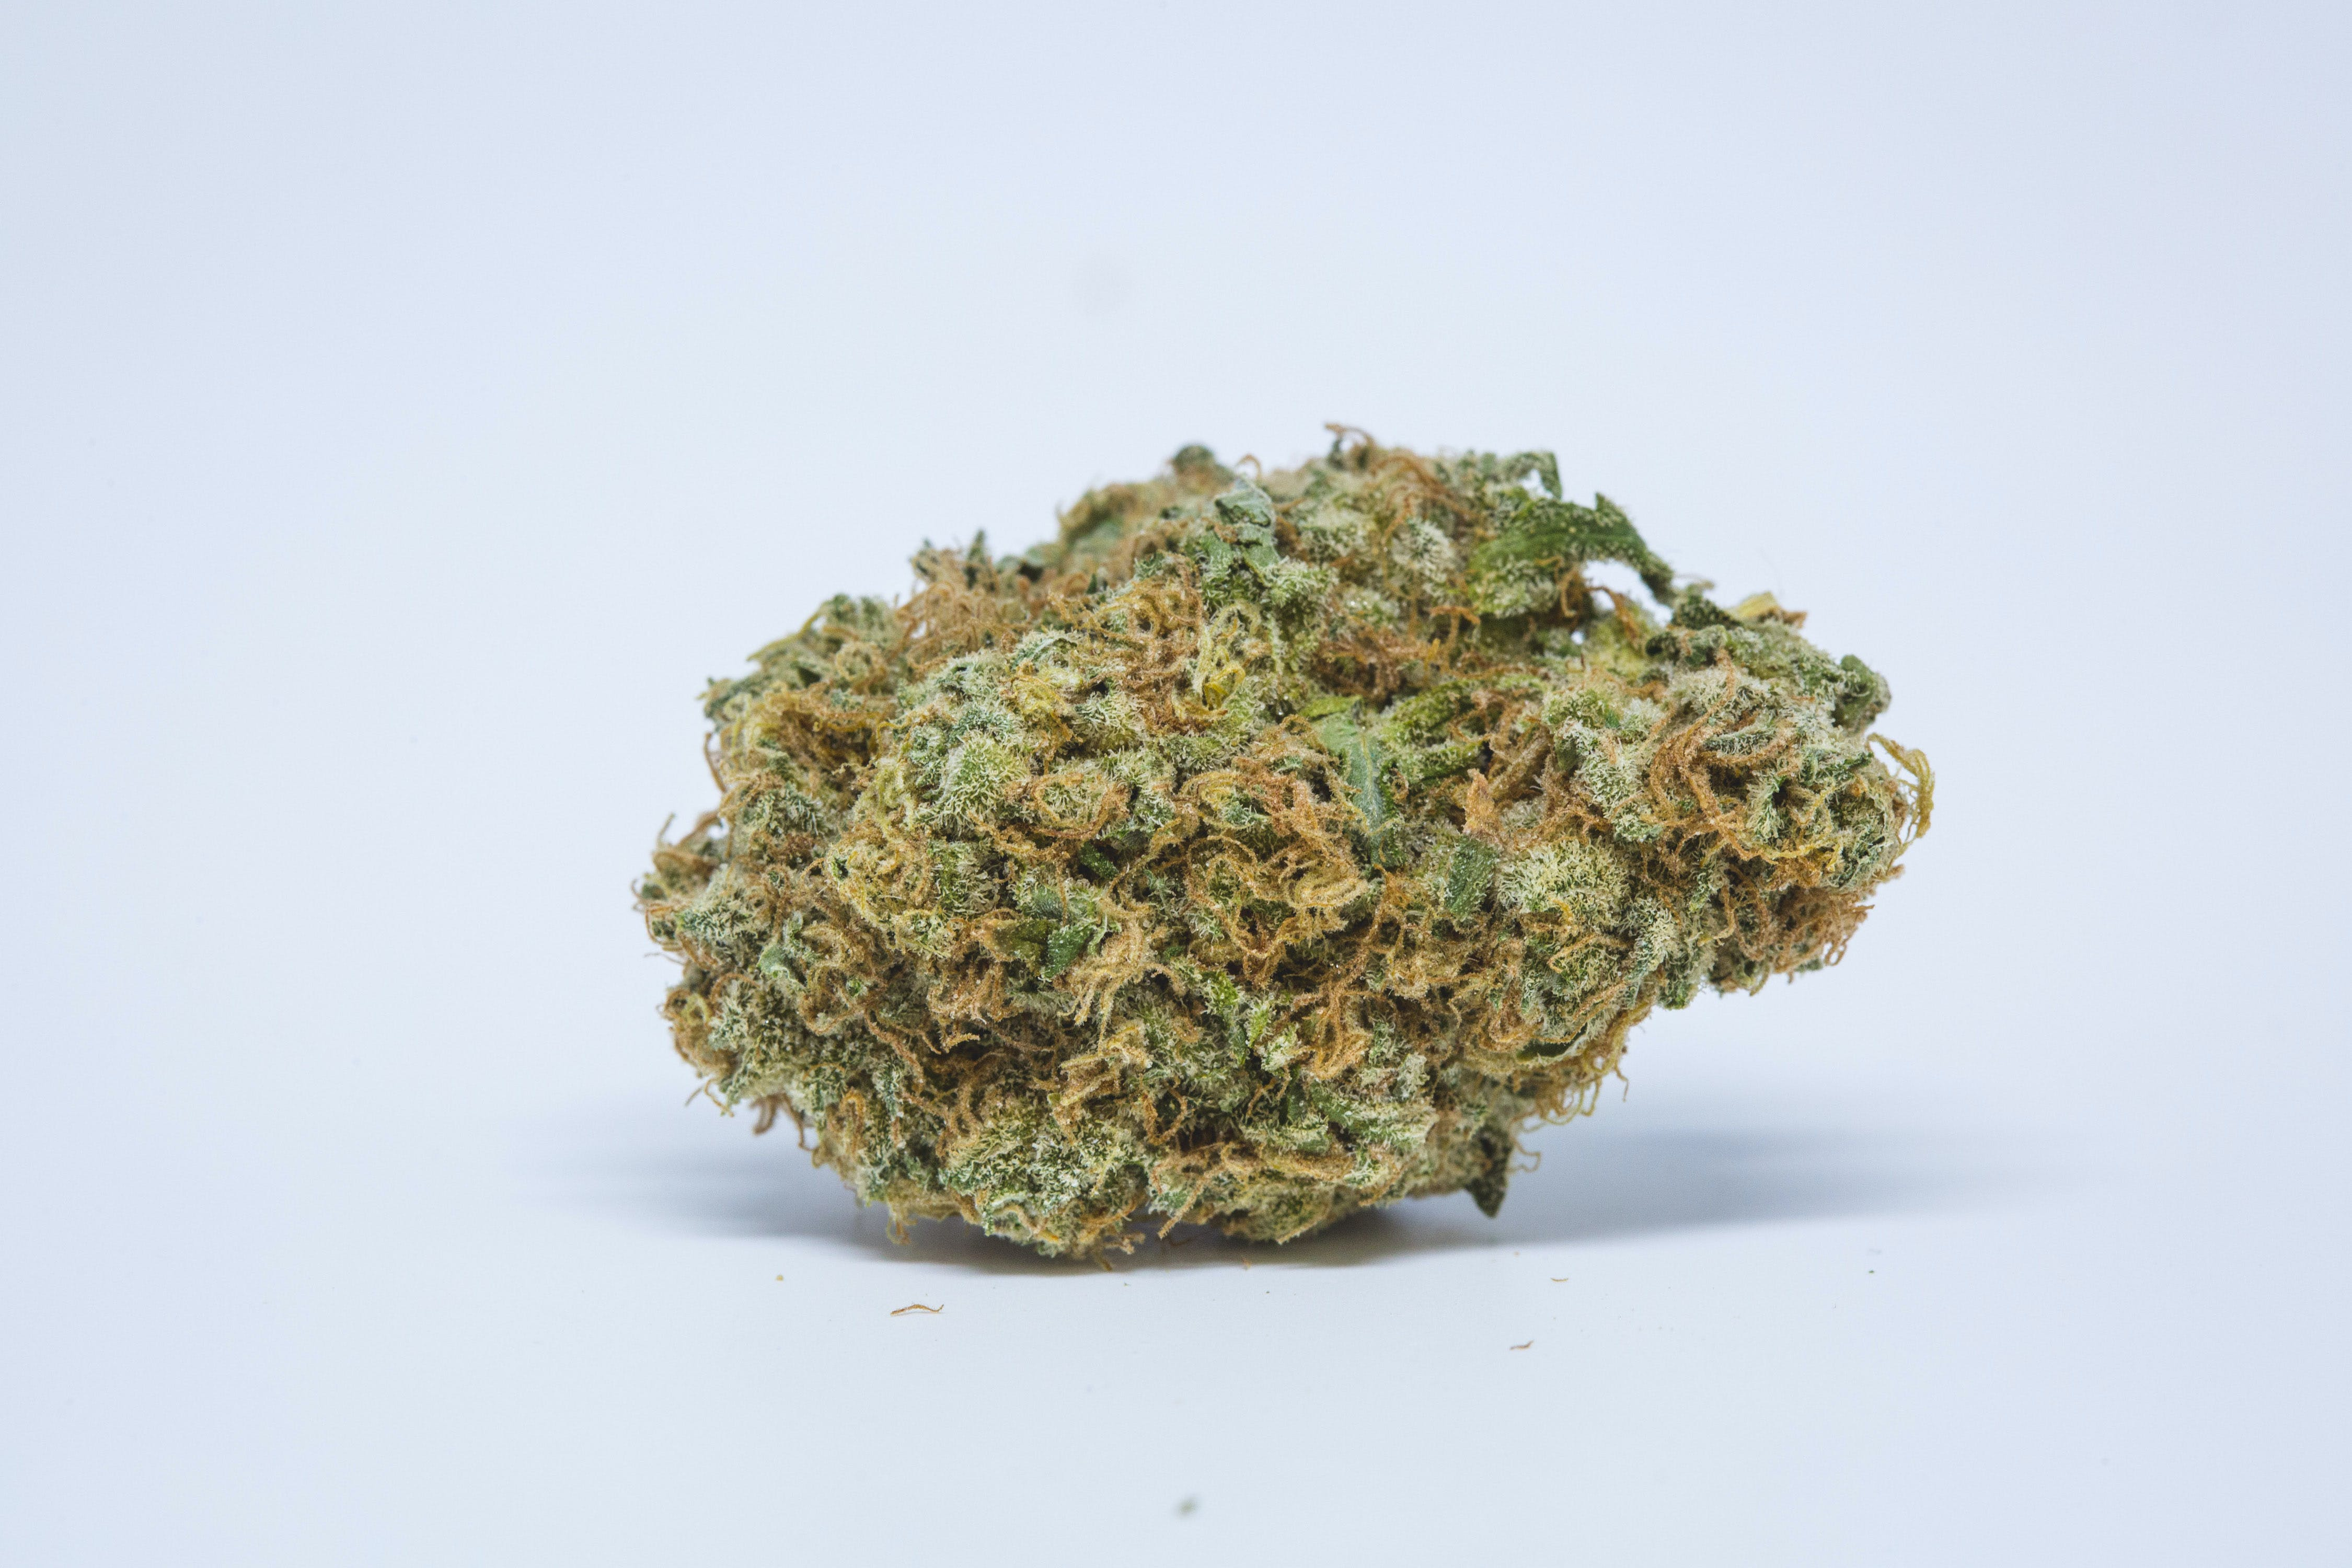 Best Buds Critical OG 7 People Are Being Arrested For Driving High, Even Though Theyve Never Smoked Weed